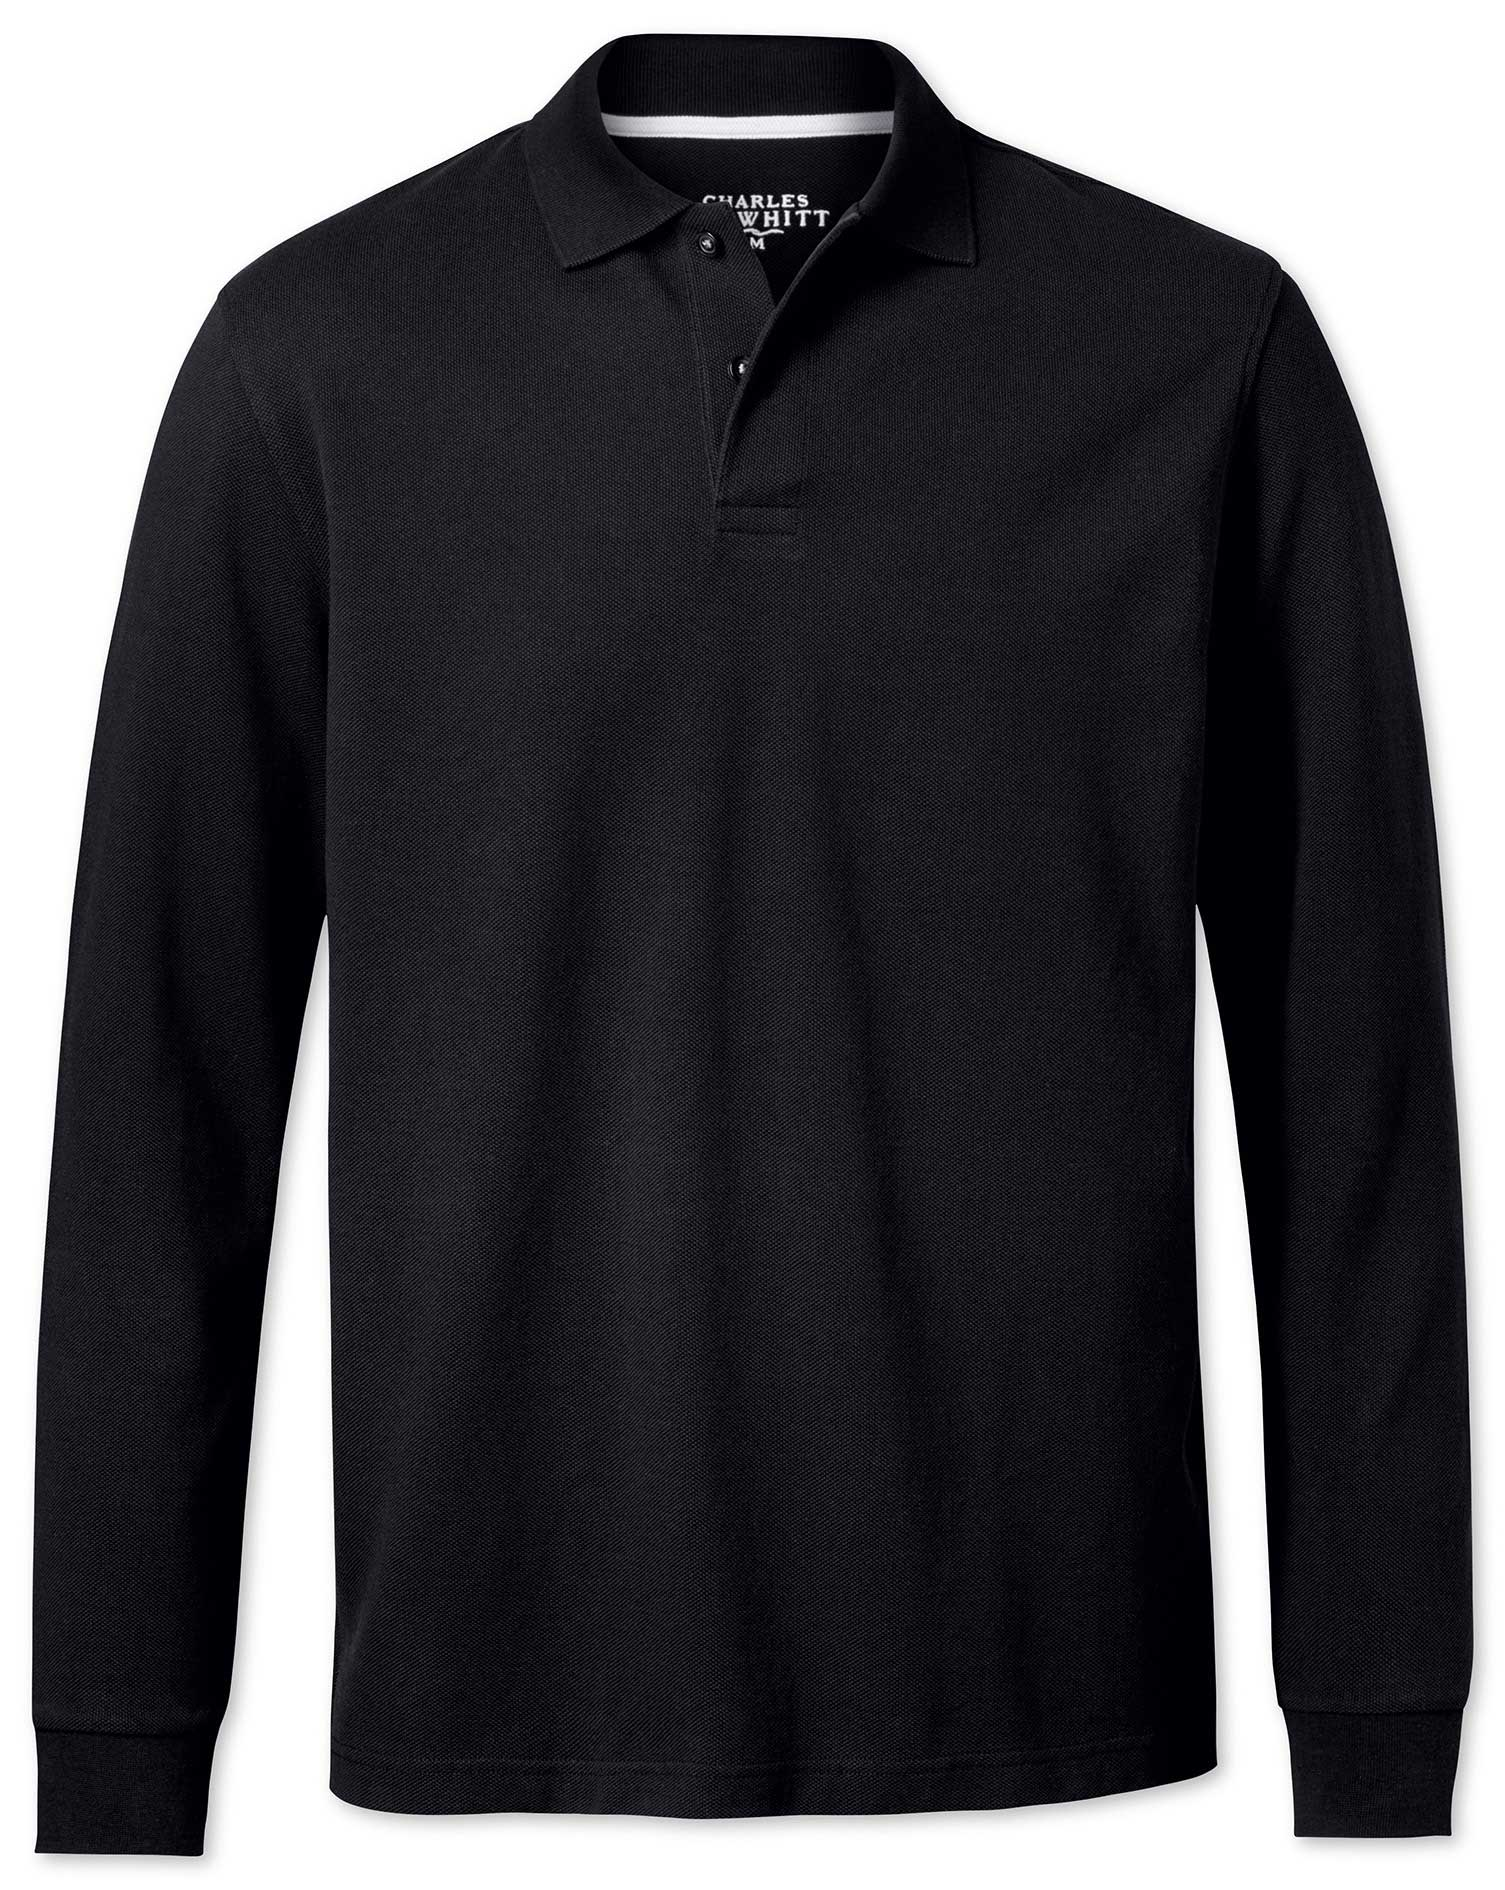 Black Pique Long Sleeve Cotton Polo Size Large by Charles Tyrwhitt